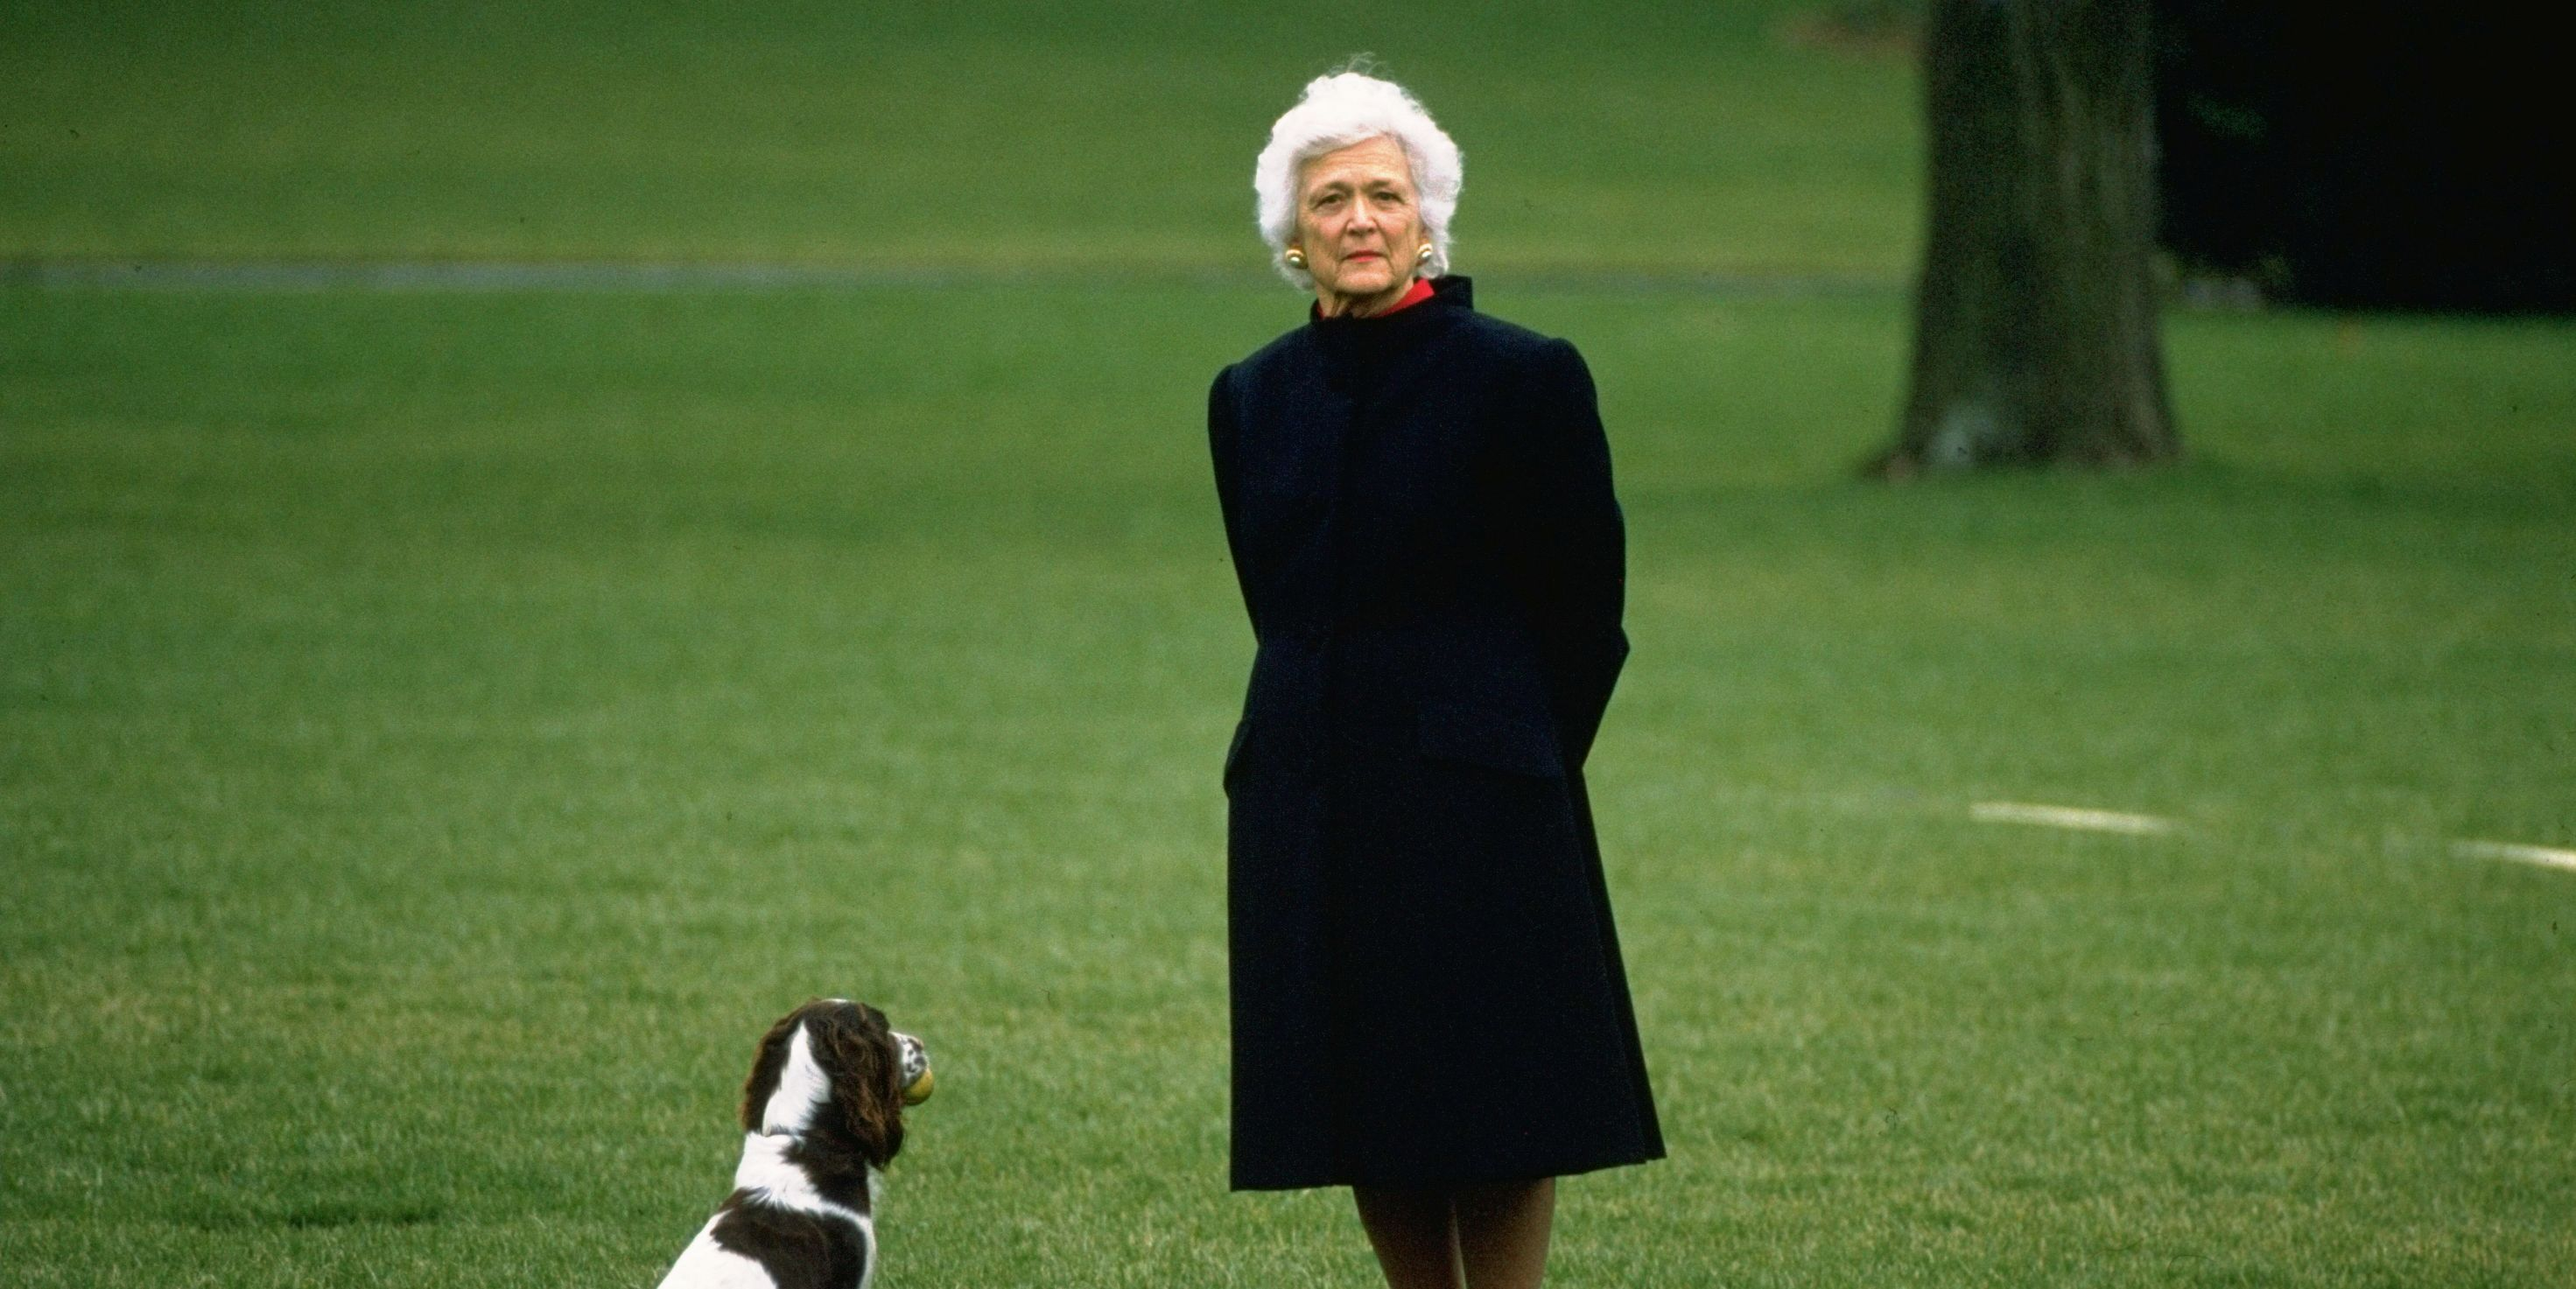 barbara bush on the white house lawn